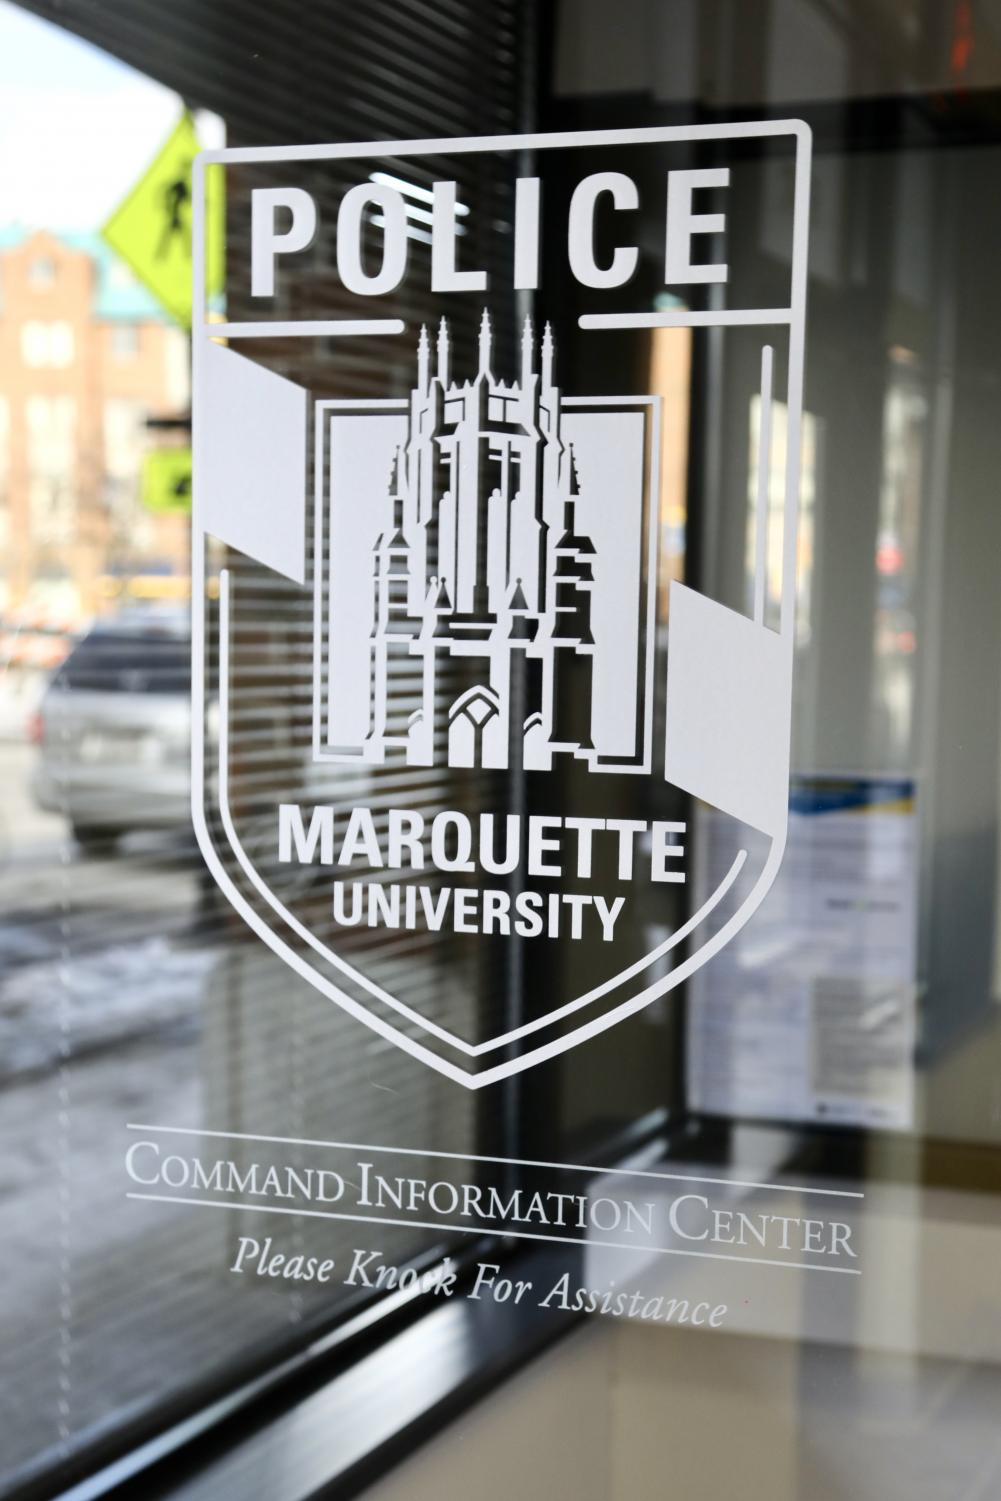 Two suspects robbed a Marquette-affiliated victim of his wallet and phone, leaving him injured.